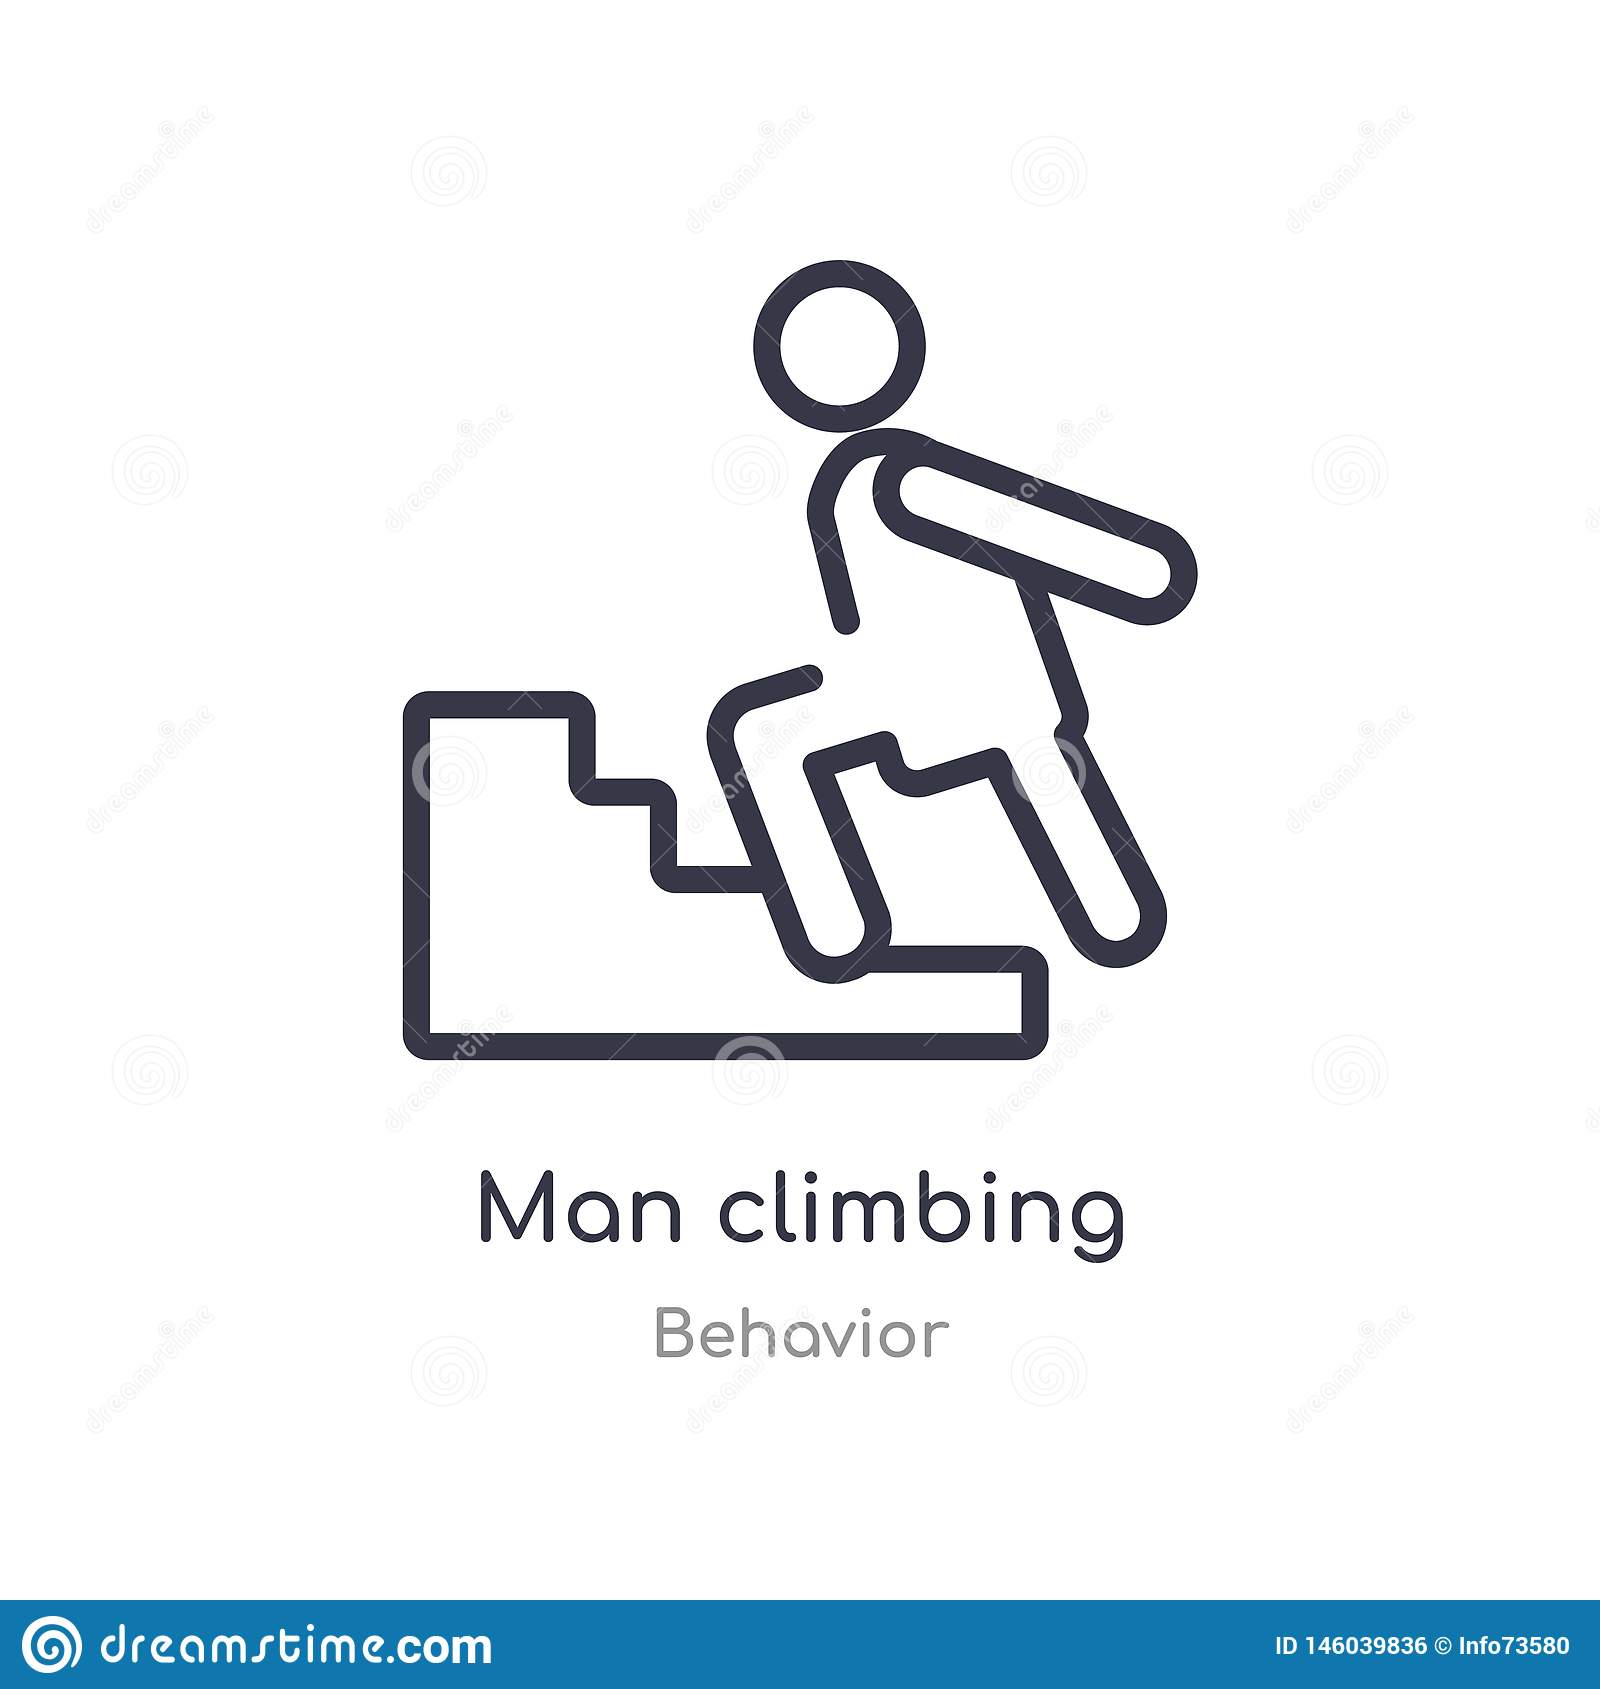 man climbing outline icon. isolated line vector illustration from behavior collection. editable thin stroke man climbing icon on